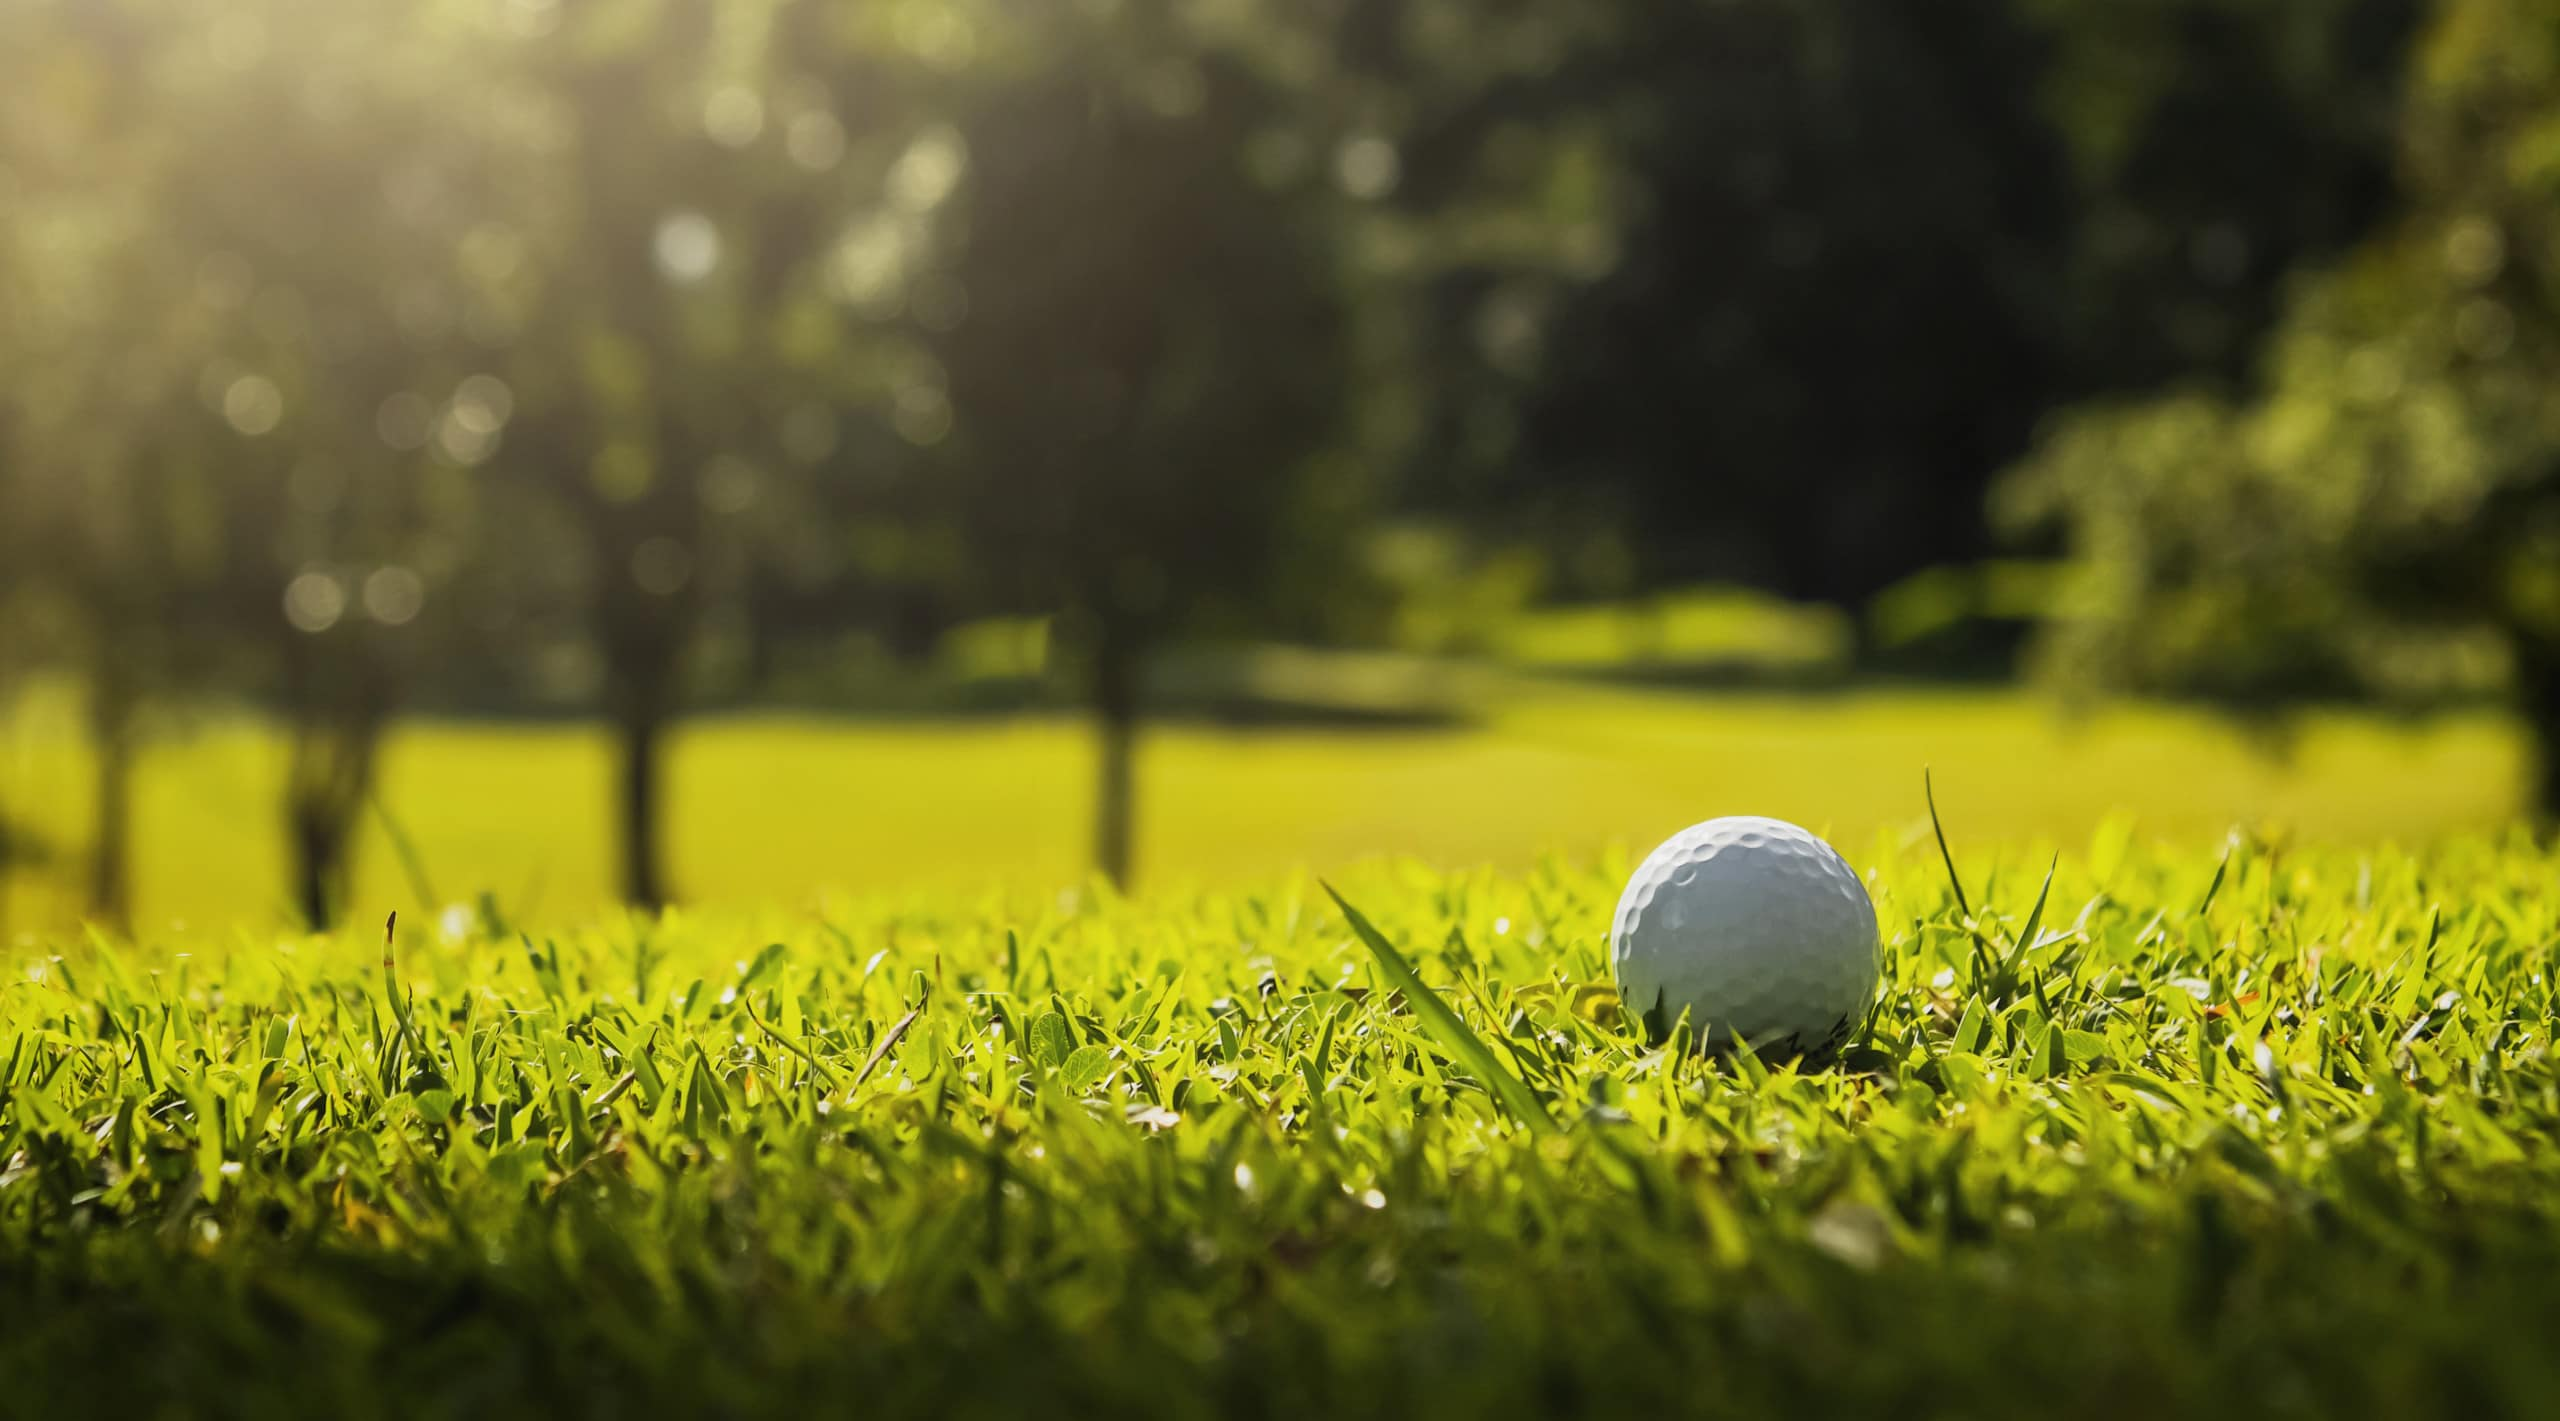 9th Annual KNCH Law Charity Golf Classic